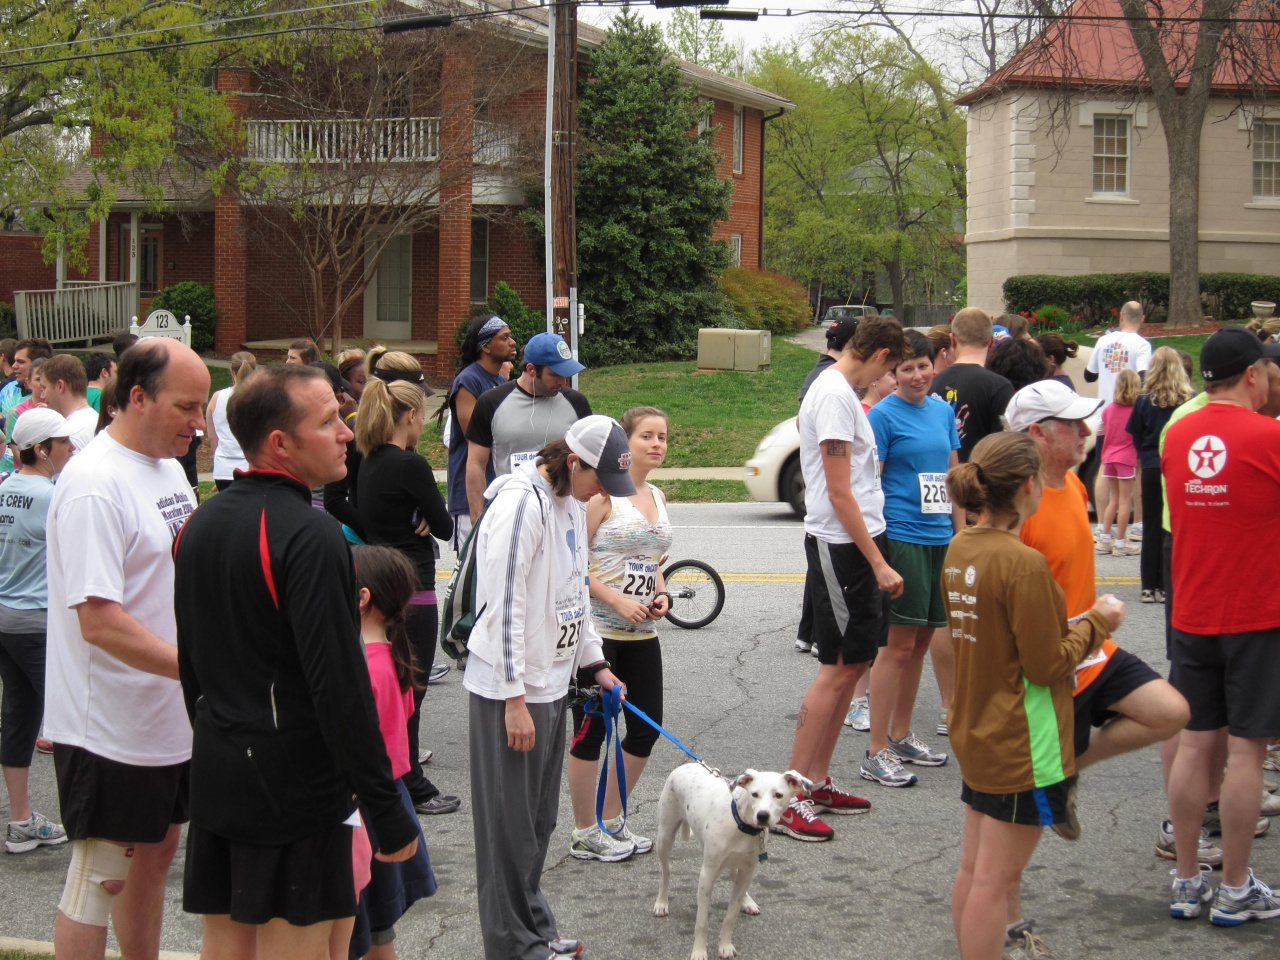 About to start Tour Decatur 5k